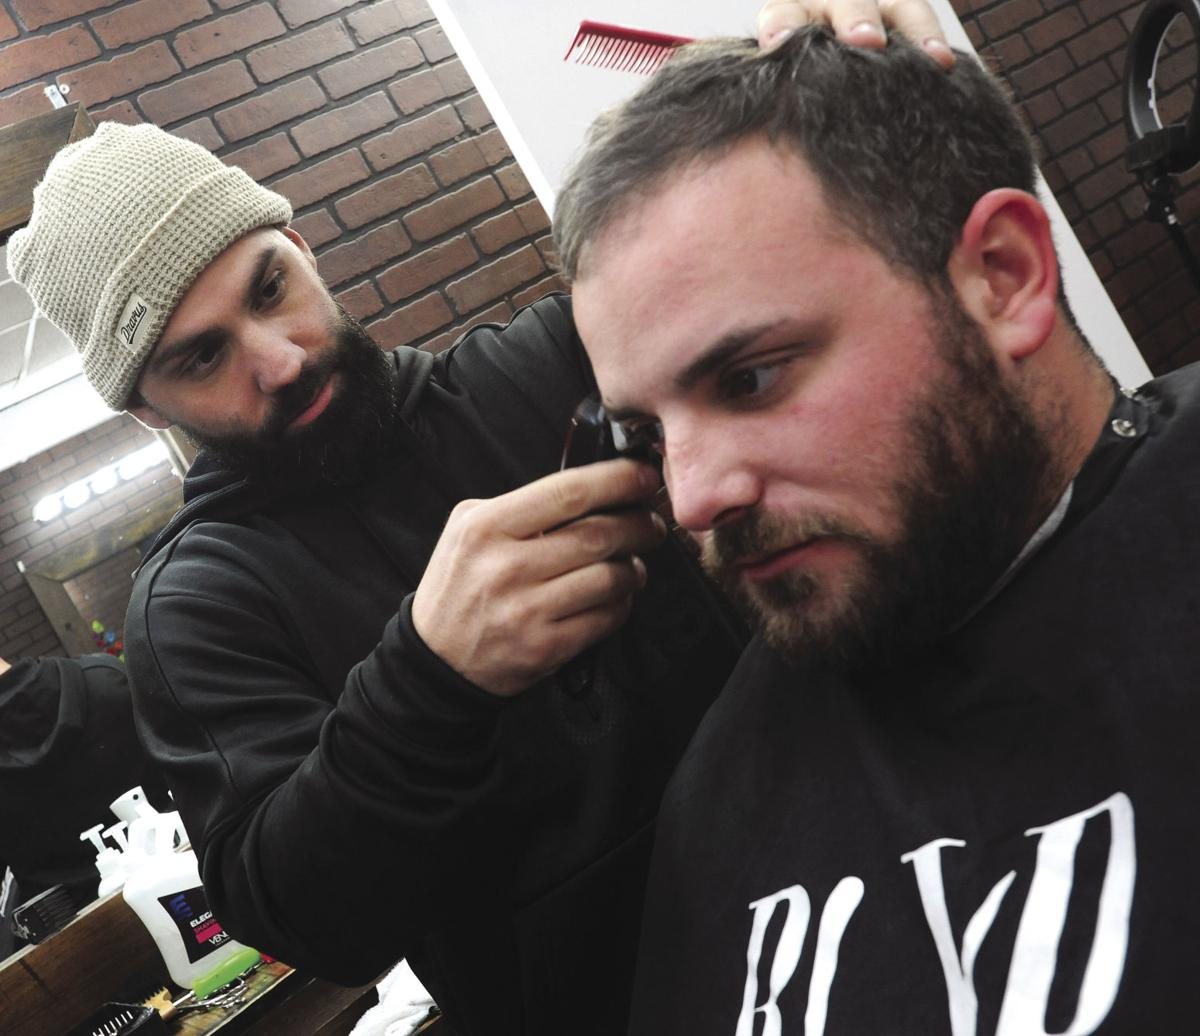 A CUT ABOVE: Thanks to local barber, Woonsocket High's football team received Super Bowl sendoff from Patriots rookie running back Sony Michel